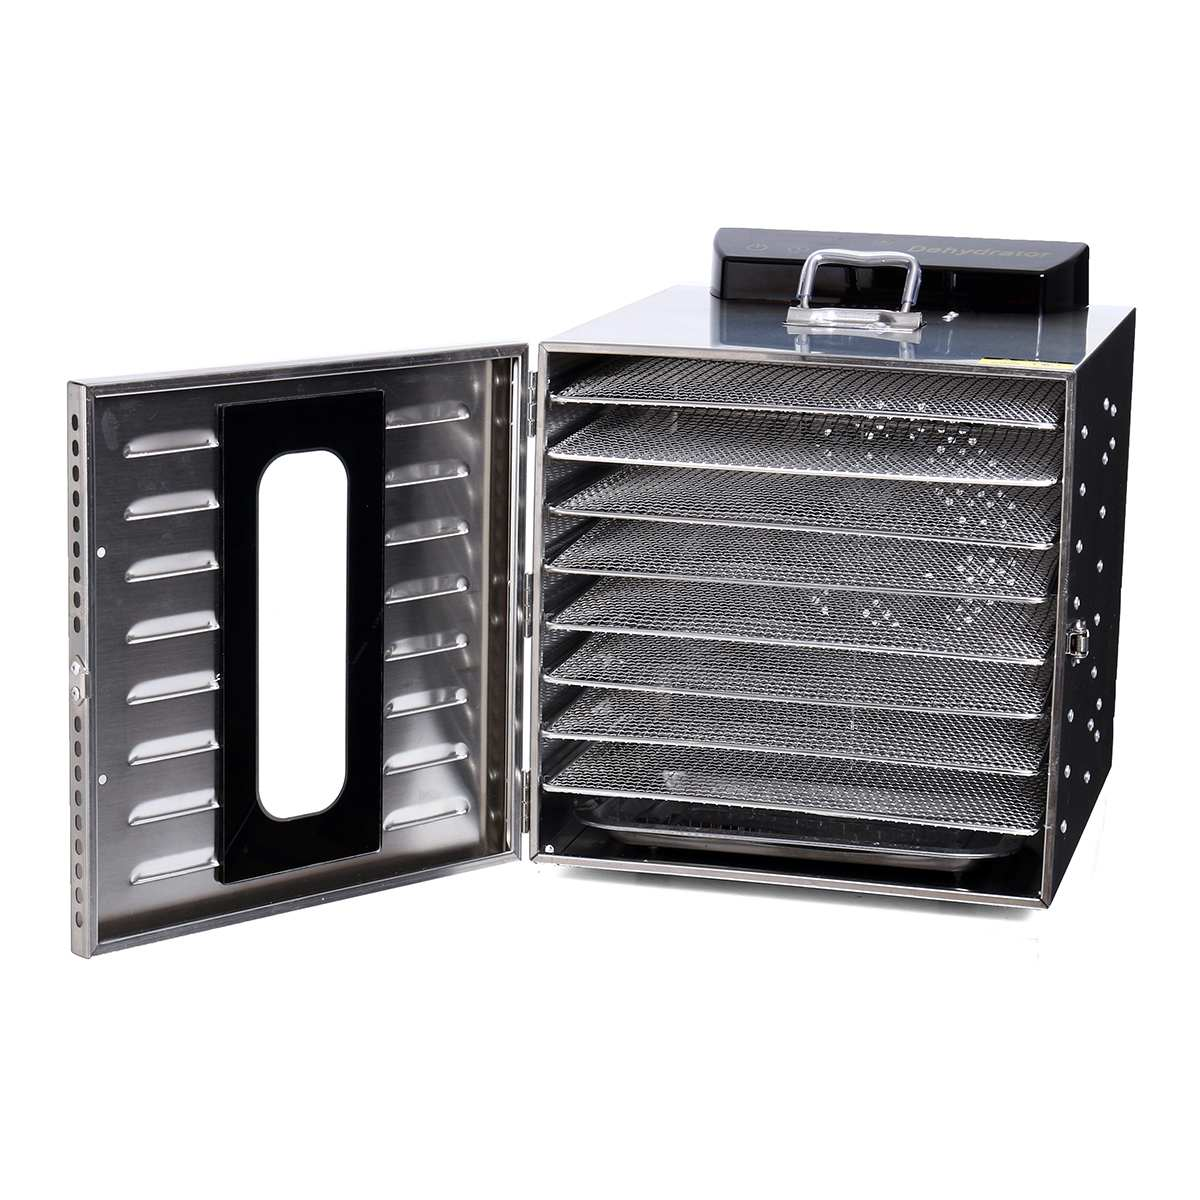 8 Layer Commercial Professional Fruit Food Dryer Stainless Steel Food Fruit Vegetable Pet Meat Air Dryer Electric Dehydrator